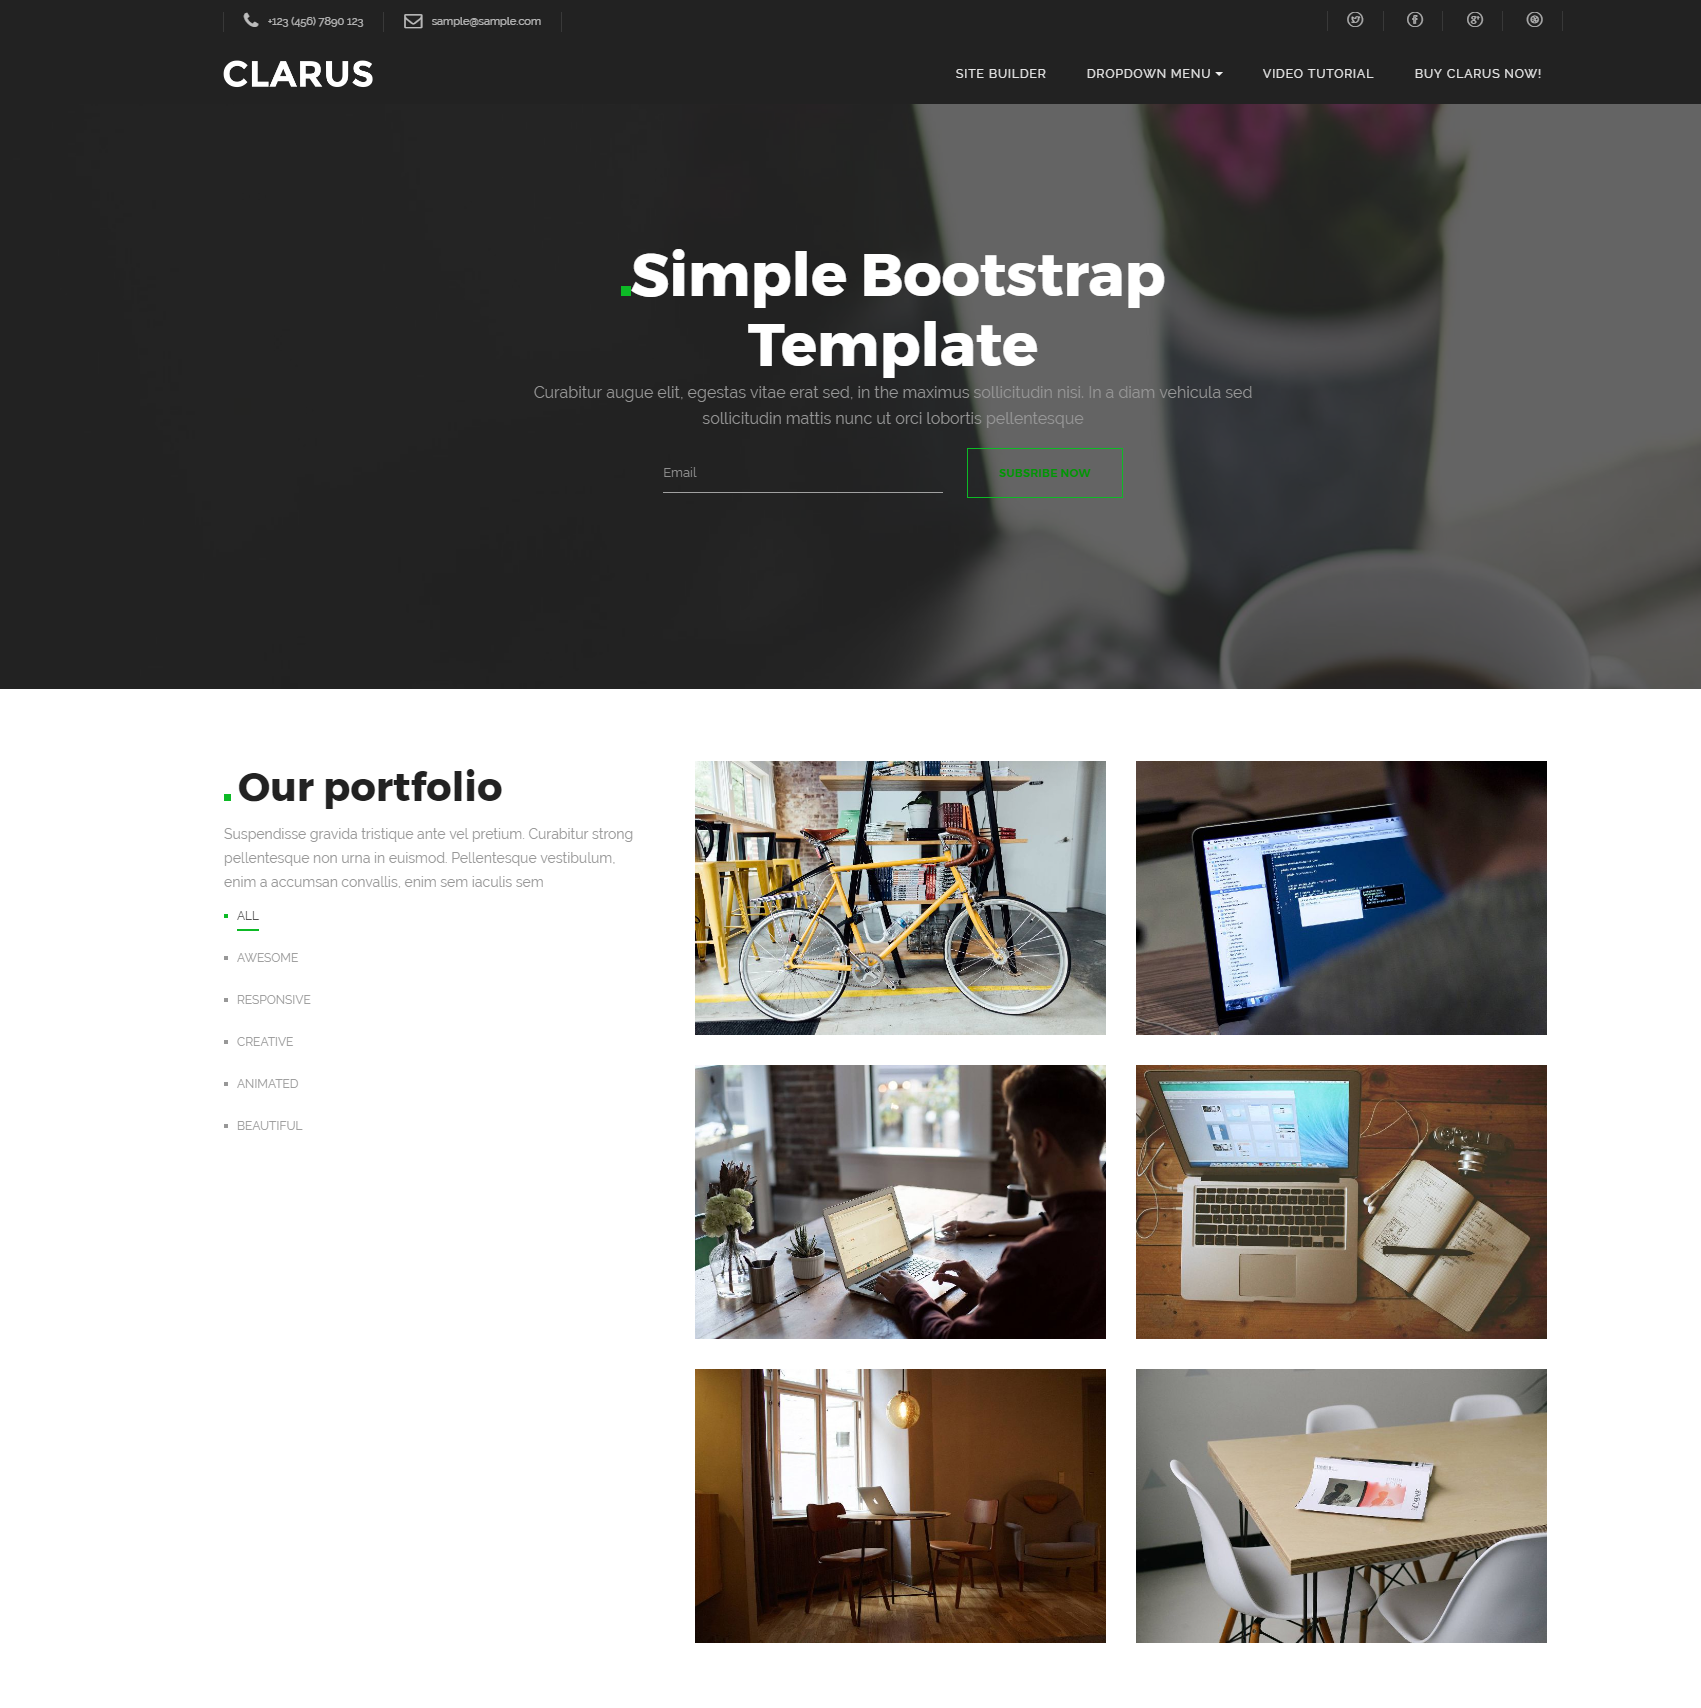 Free Download Bootstrap Simple Templates